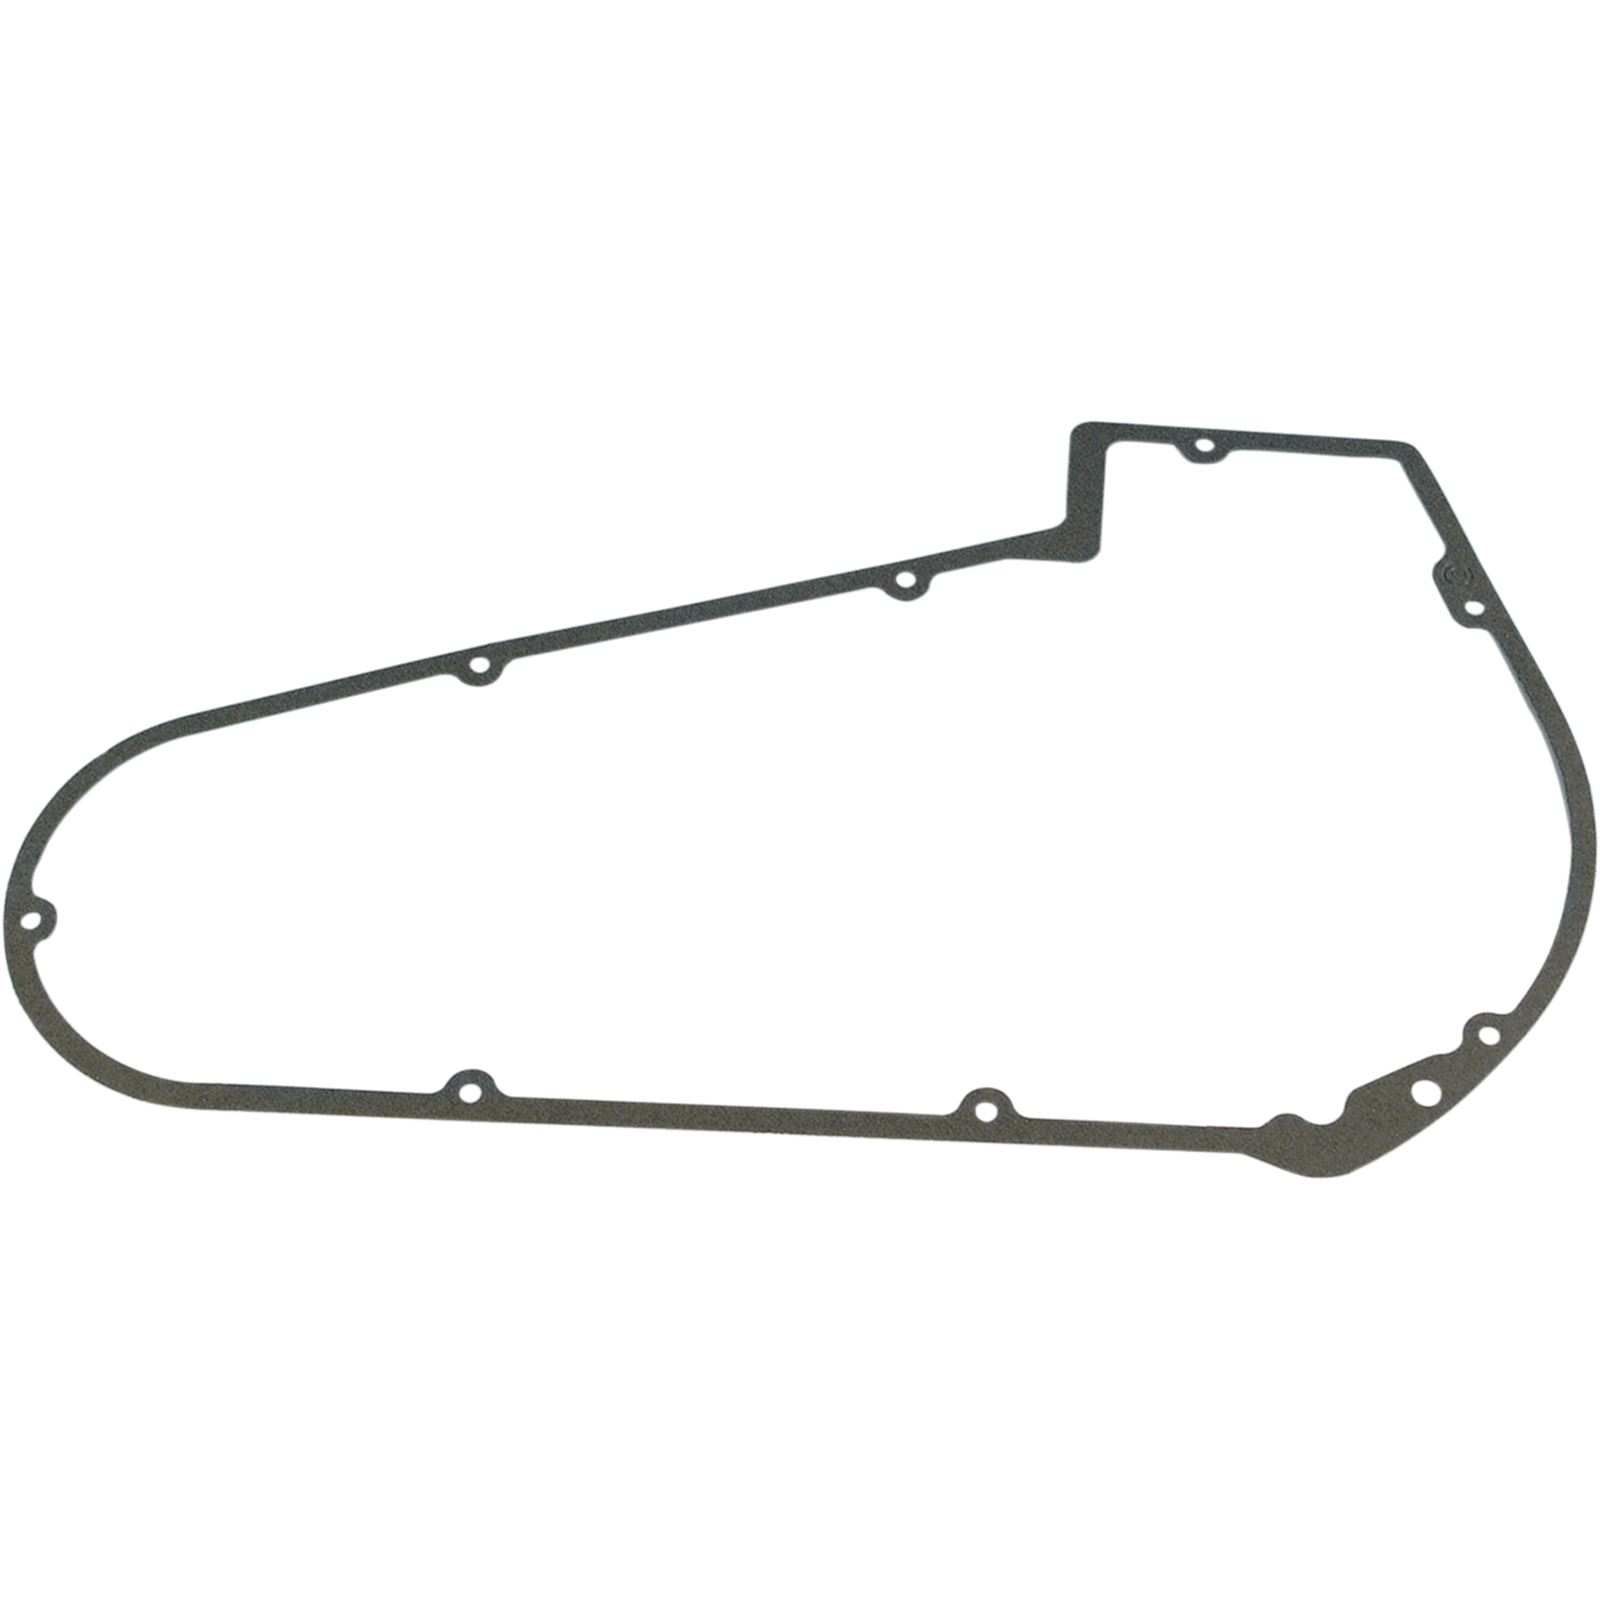 James Gaskets Primary Cover Gasket FL FX